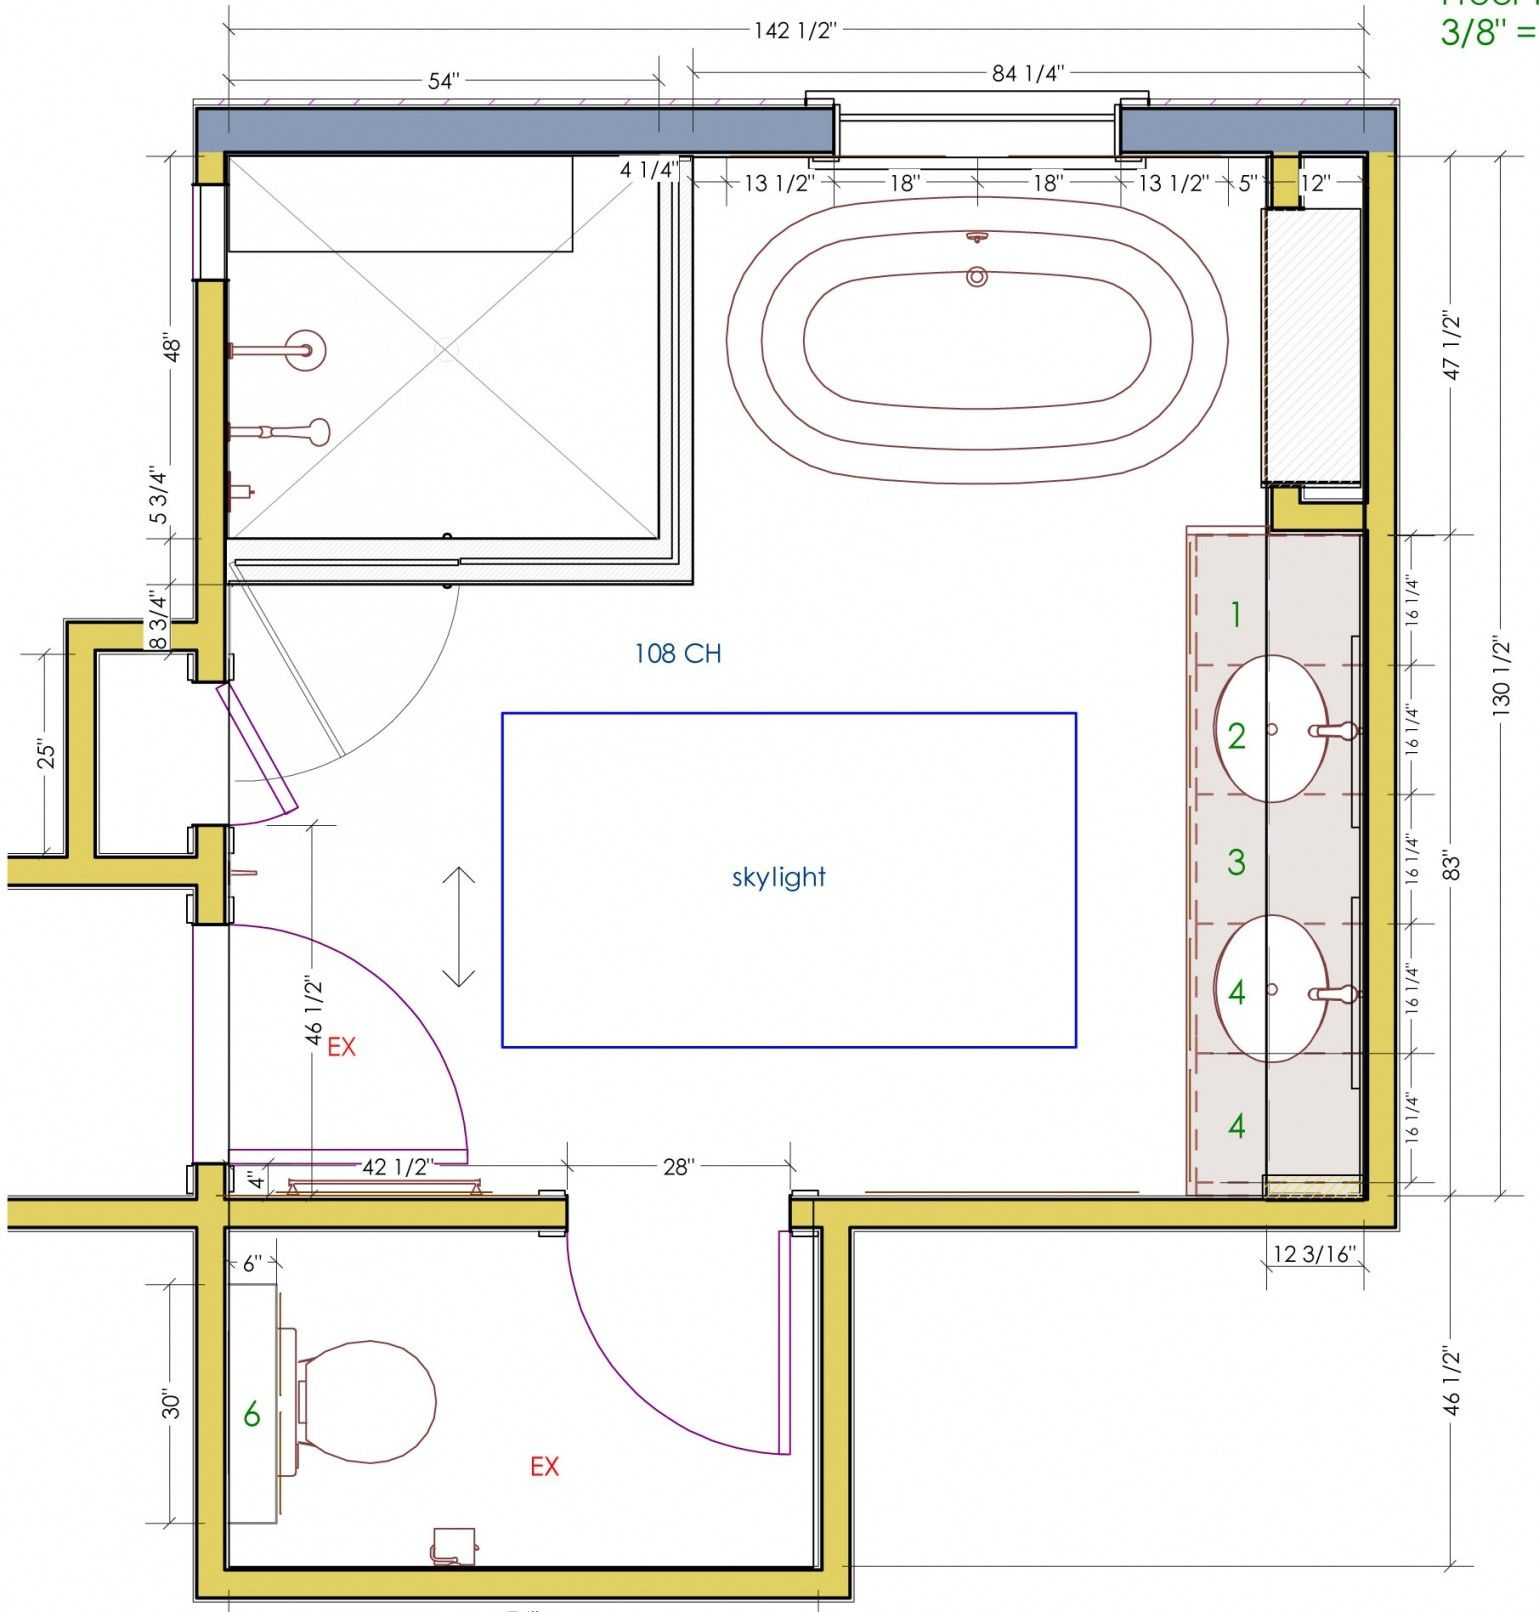 Attraktive Bad Plane Mit Kleinen Bad Design Mit Dusche Badezimmer Master Bathroom Layout Master Bath Layout Bathroom Design Layout